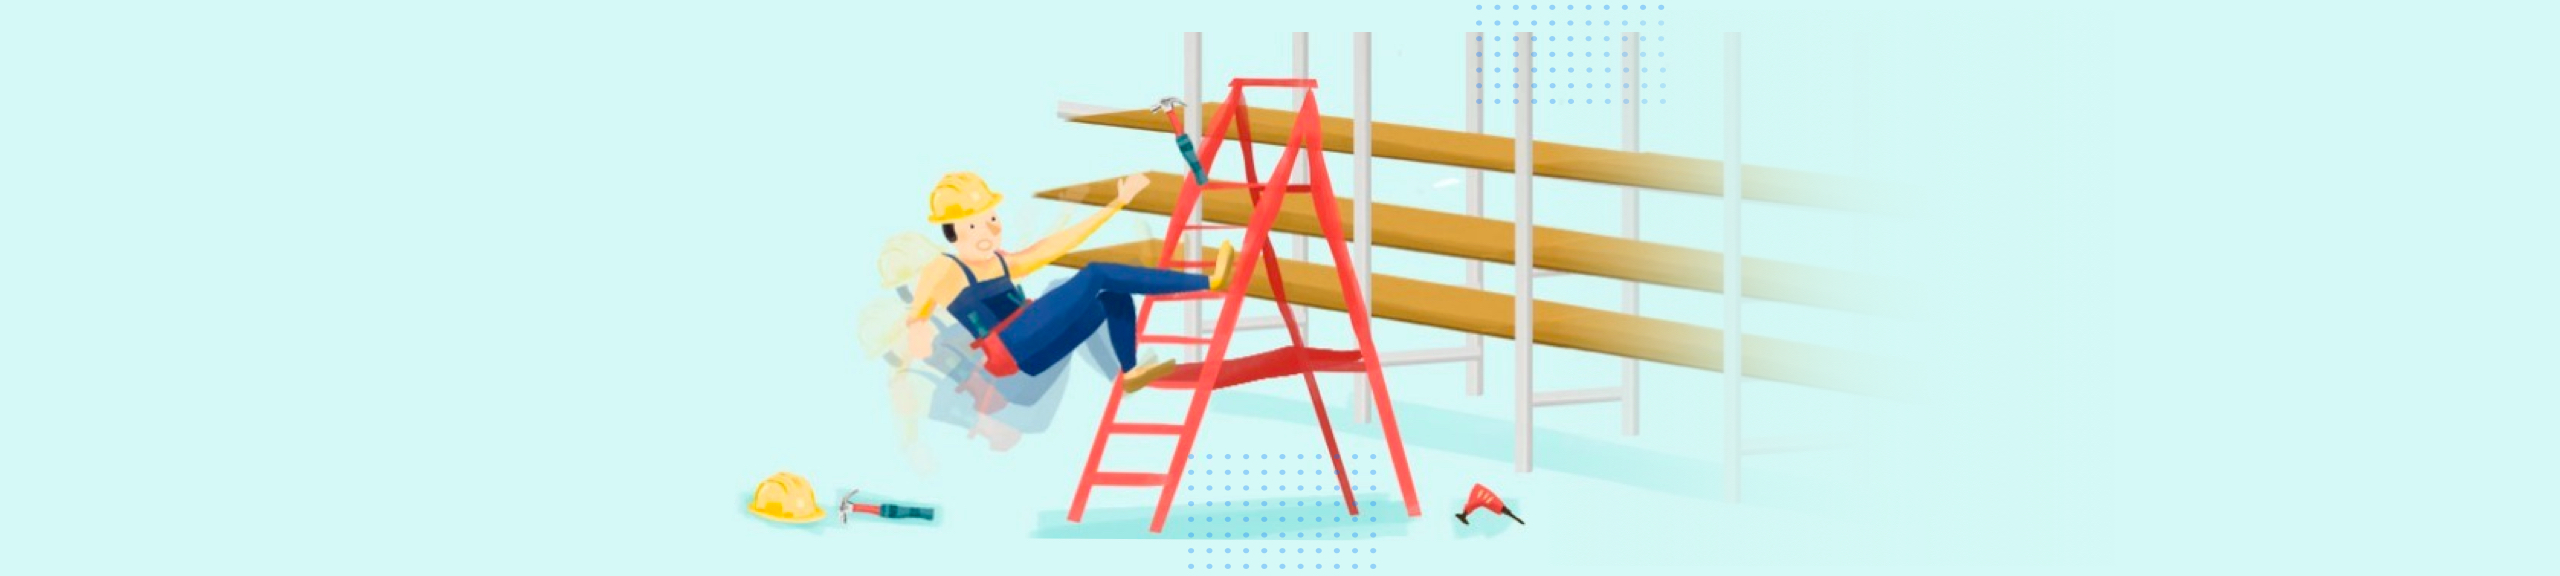 Illustration of guy falling from  ladder at construction.